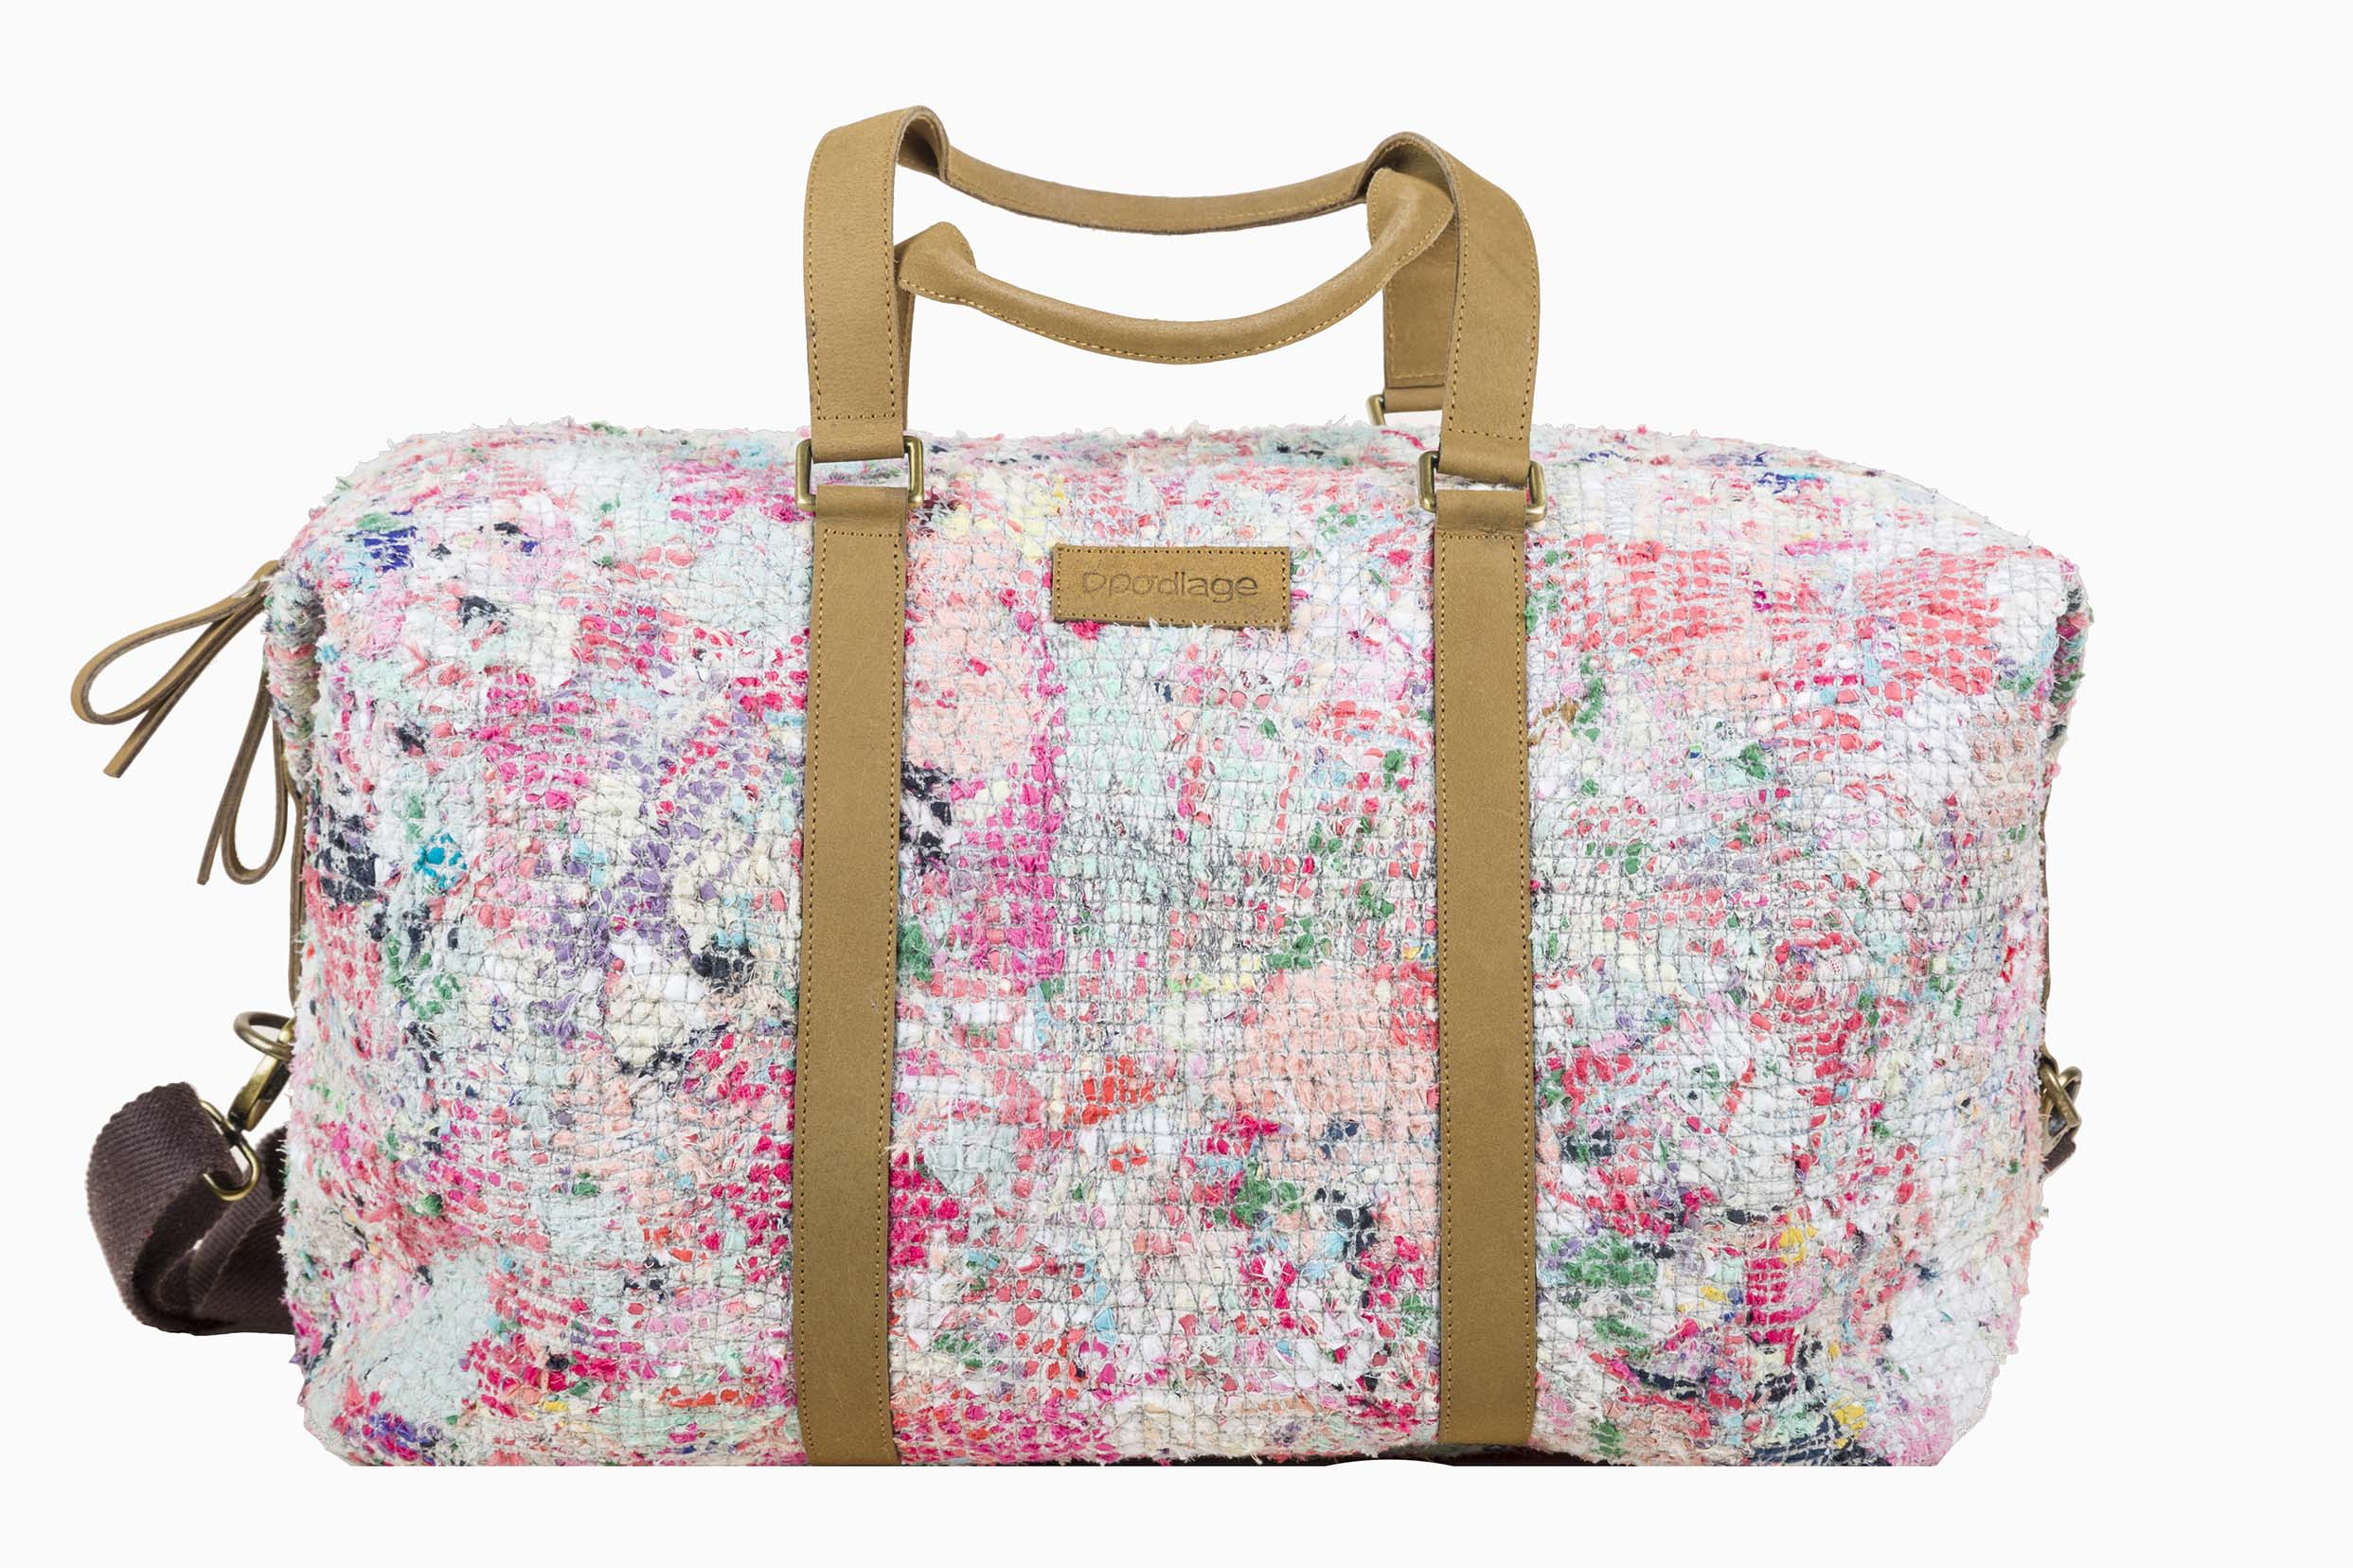 The smallest of fabric scraps at  Doodlage a re transformed into woven, patched accessories like these– A large bag from  Doodlage's  new accessories collection.